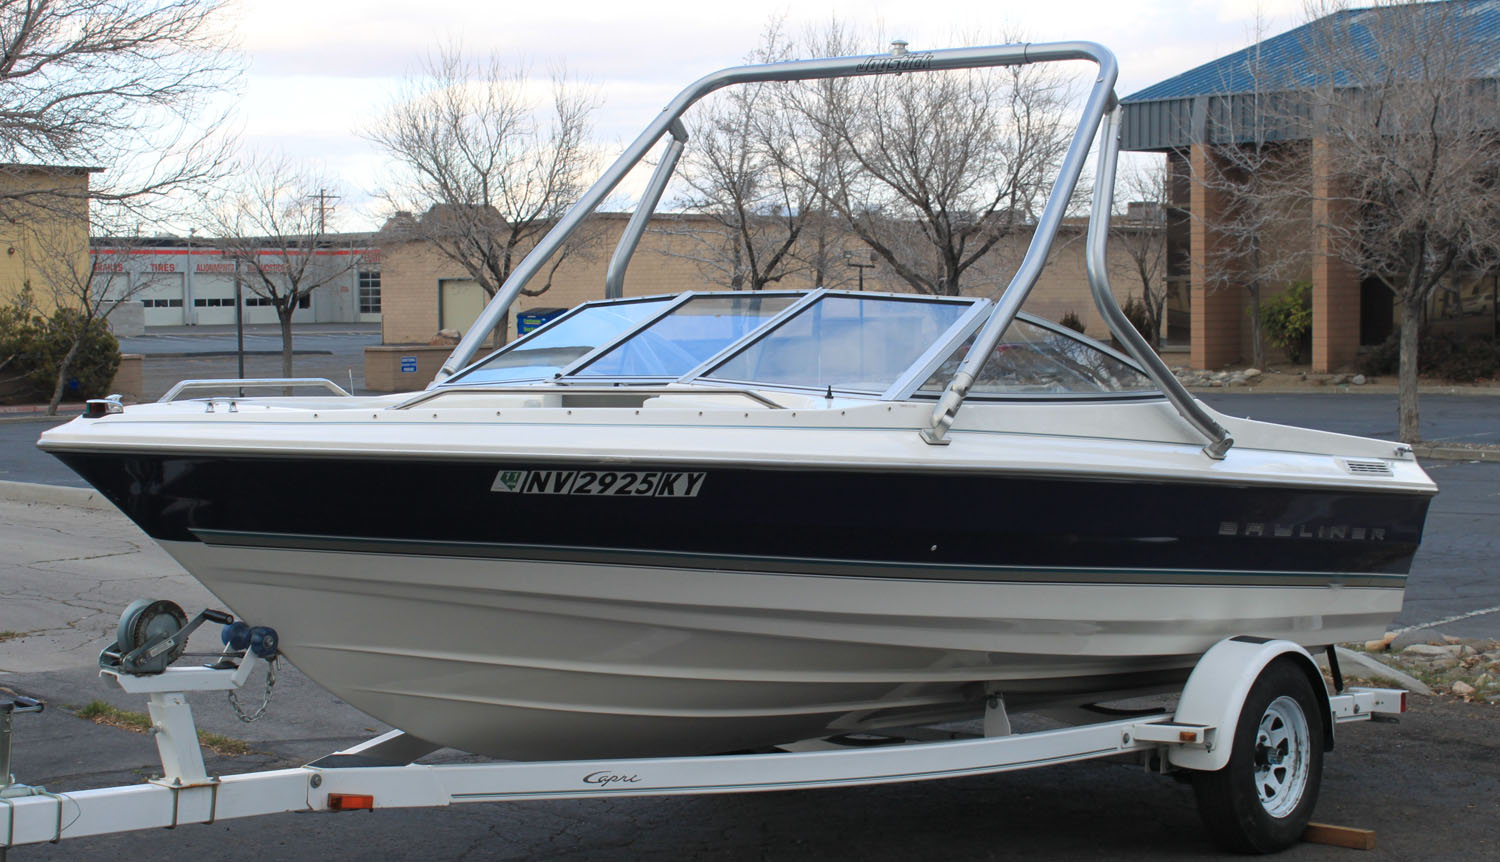 Wakeboard Tower on a 1997 Bayliner 2050 cl classic